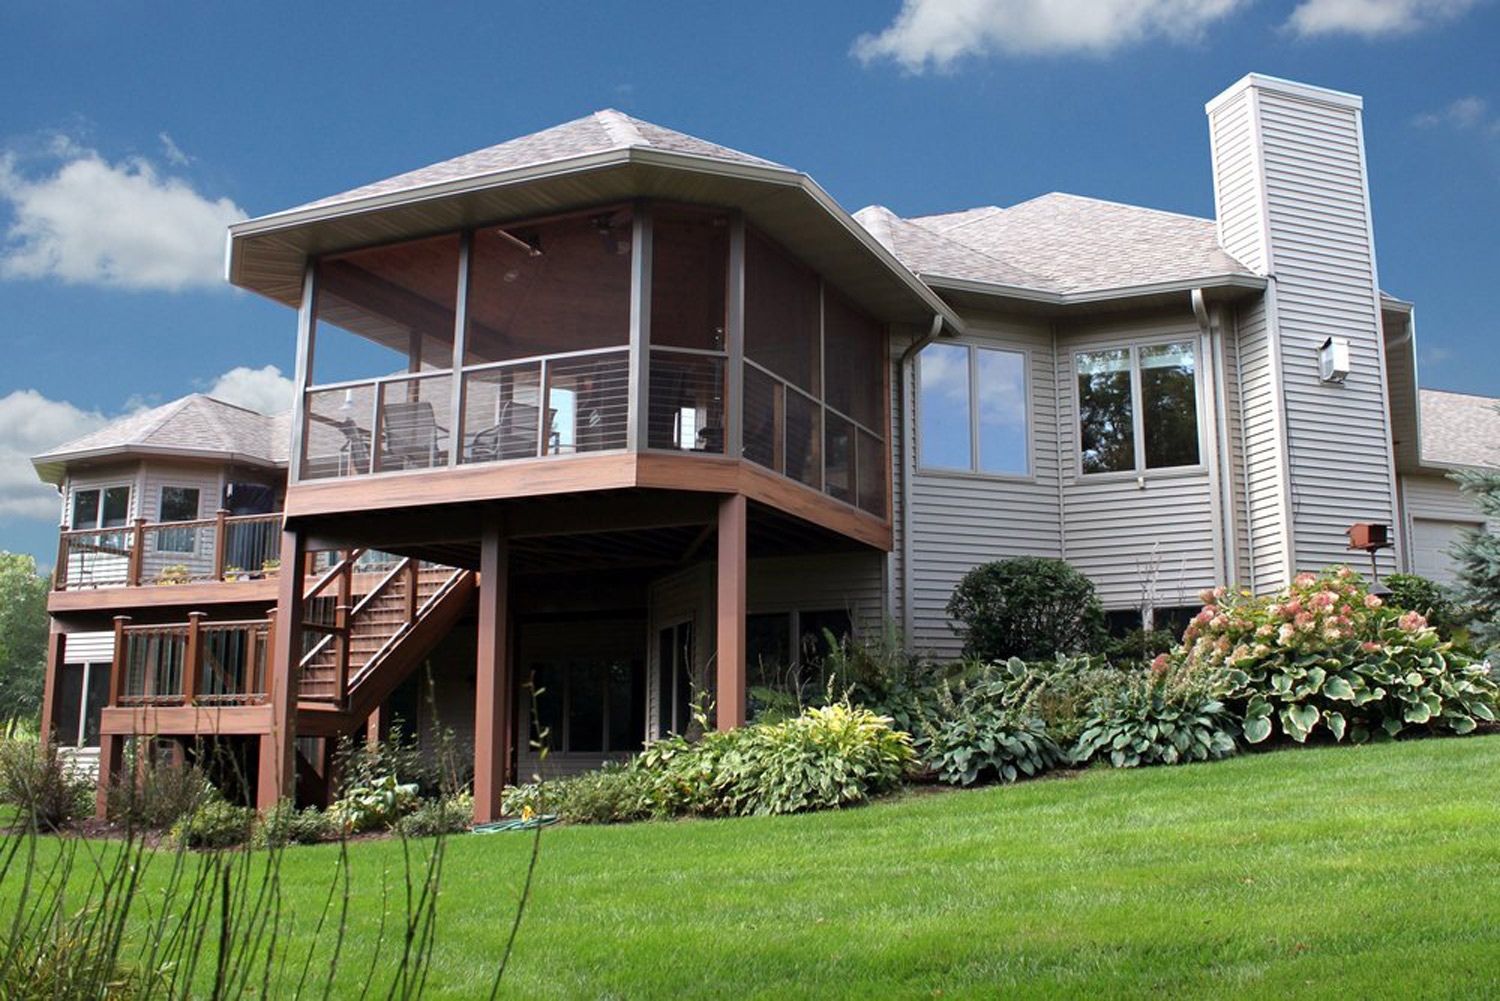 Home Renovation: Two Story Deck Design, Madison, WI